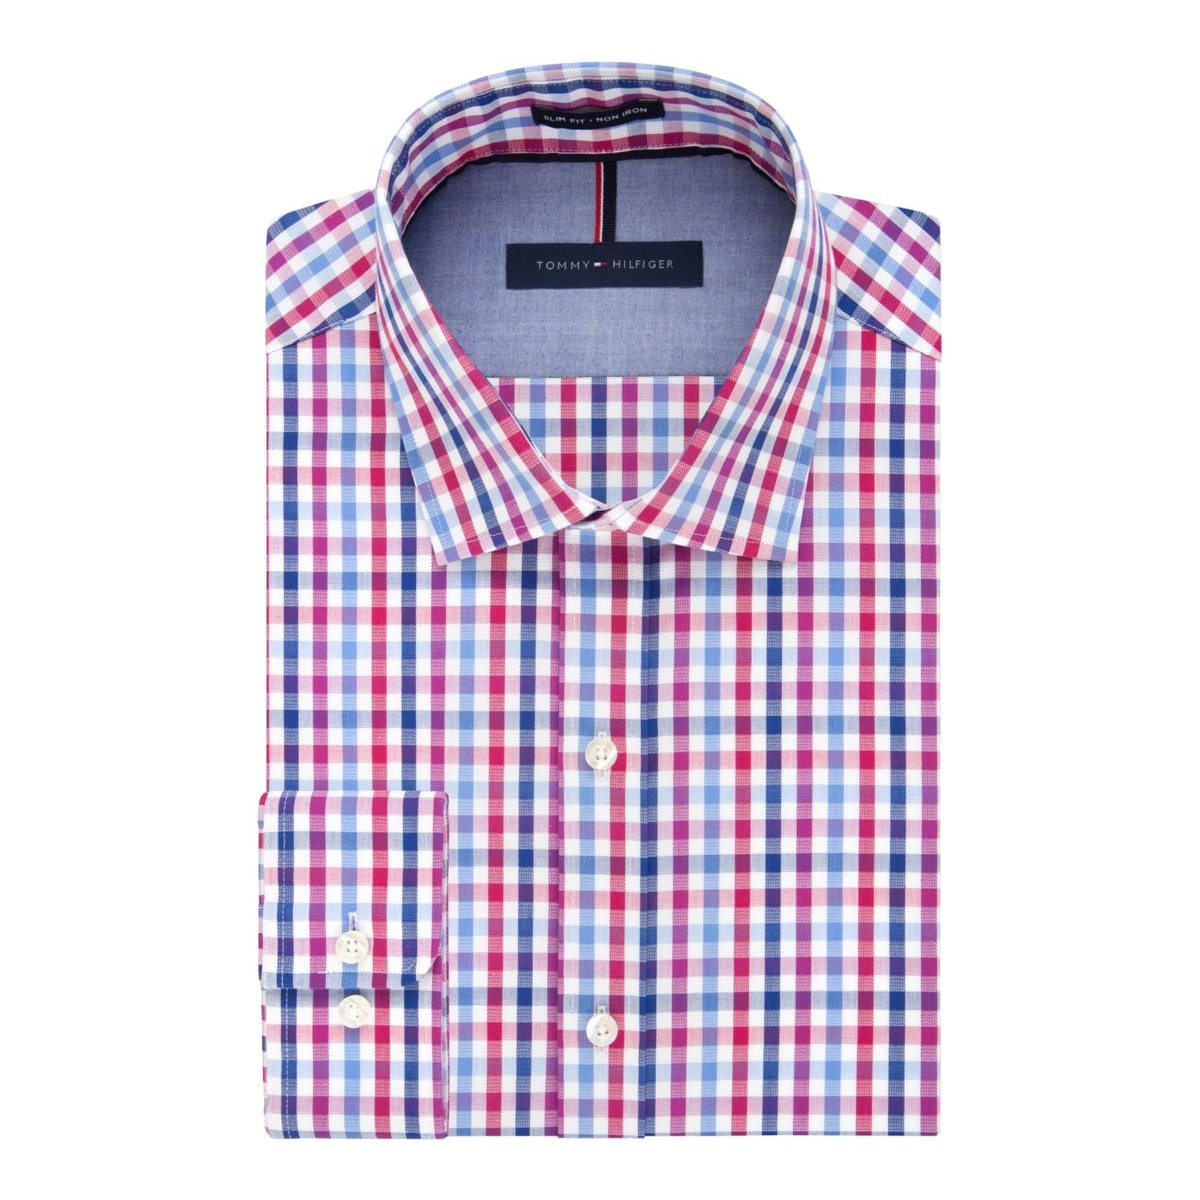 7138662b345c Tommy Hilfiger Shirts | Find Great Men's Clothing Deals Shopping at  Overstock